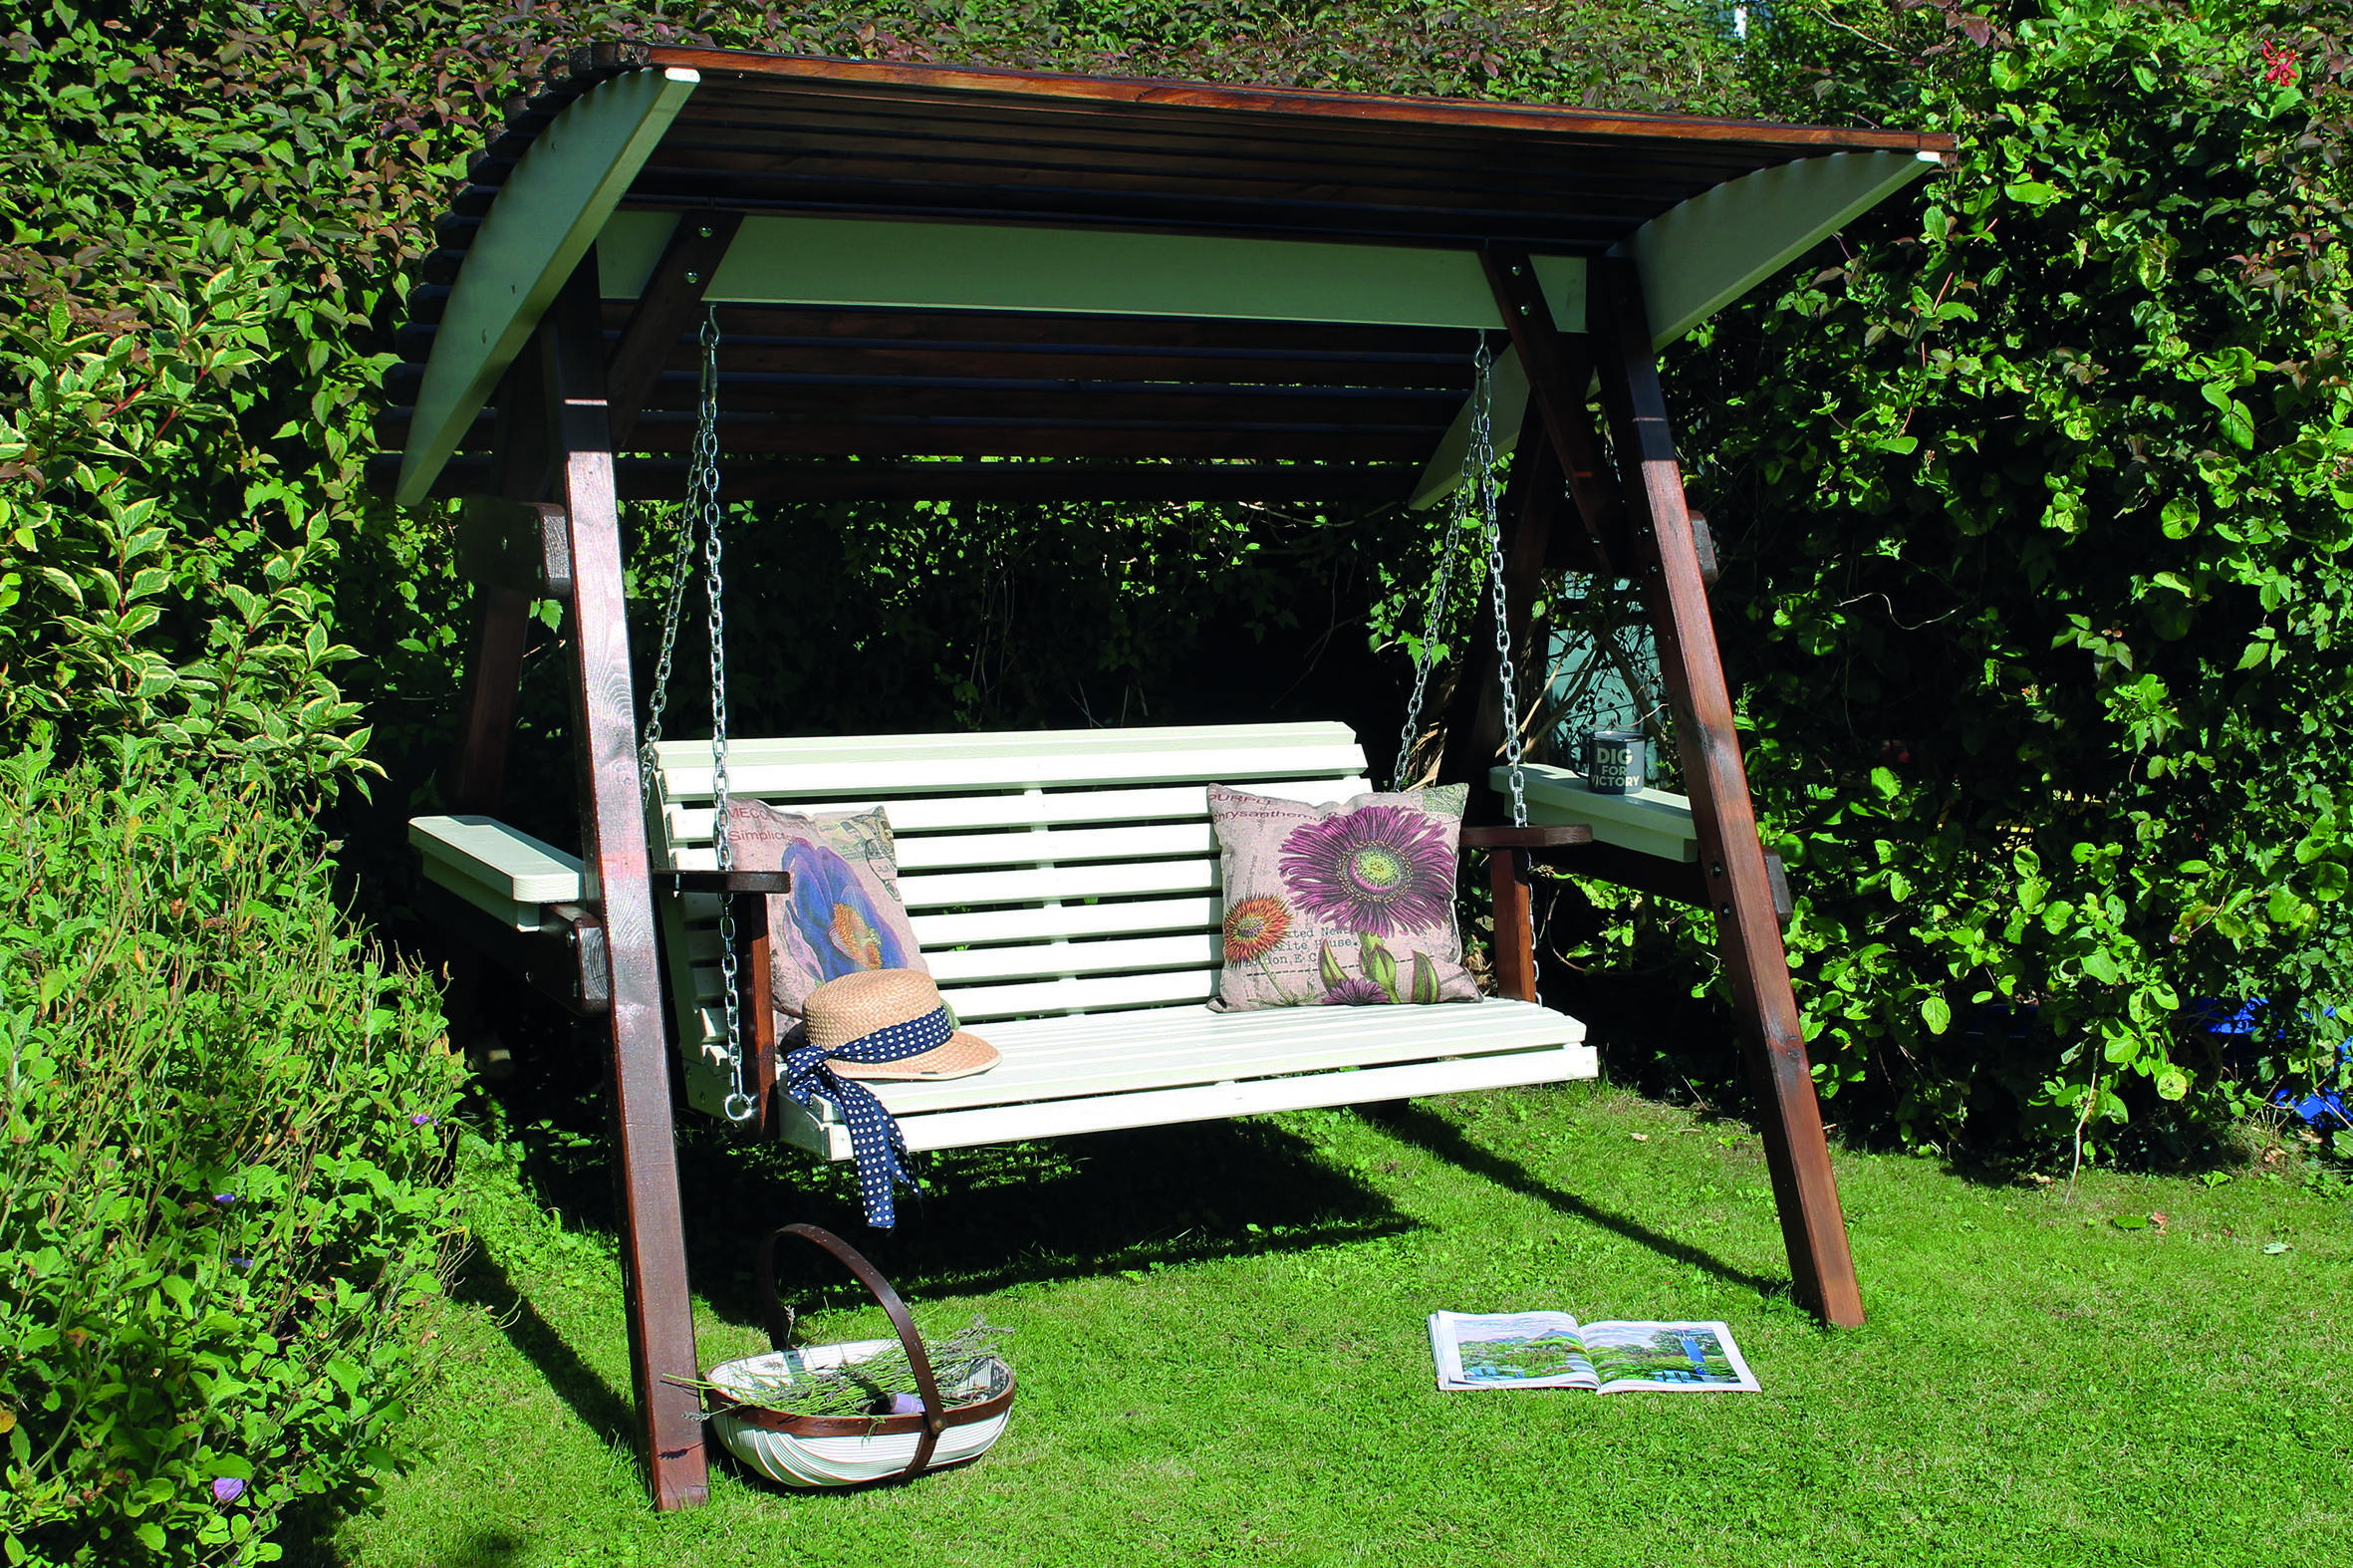 Miami Swing Seat from Zest 4 Leisure painted with Royal Exterior Taupe and Oak